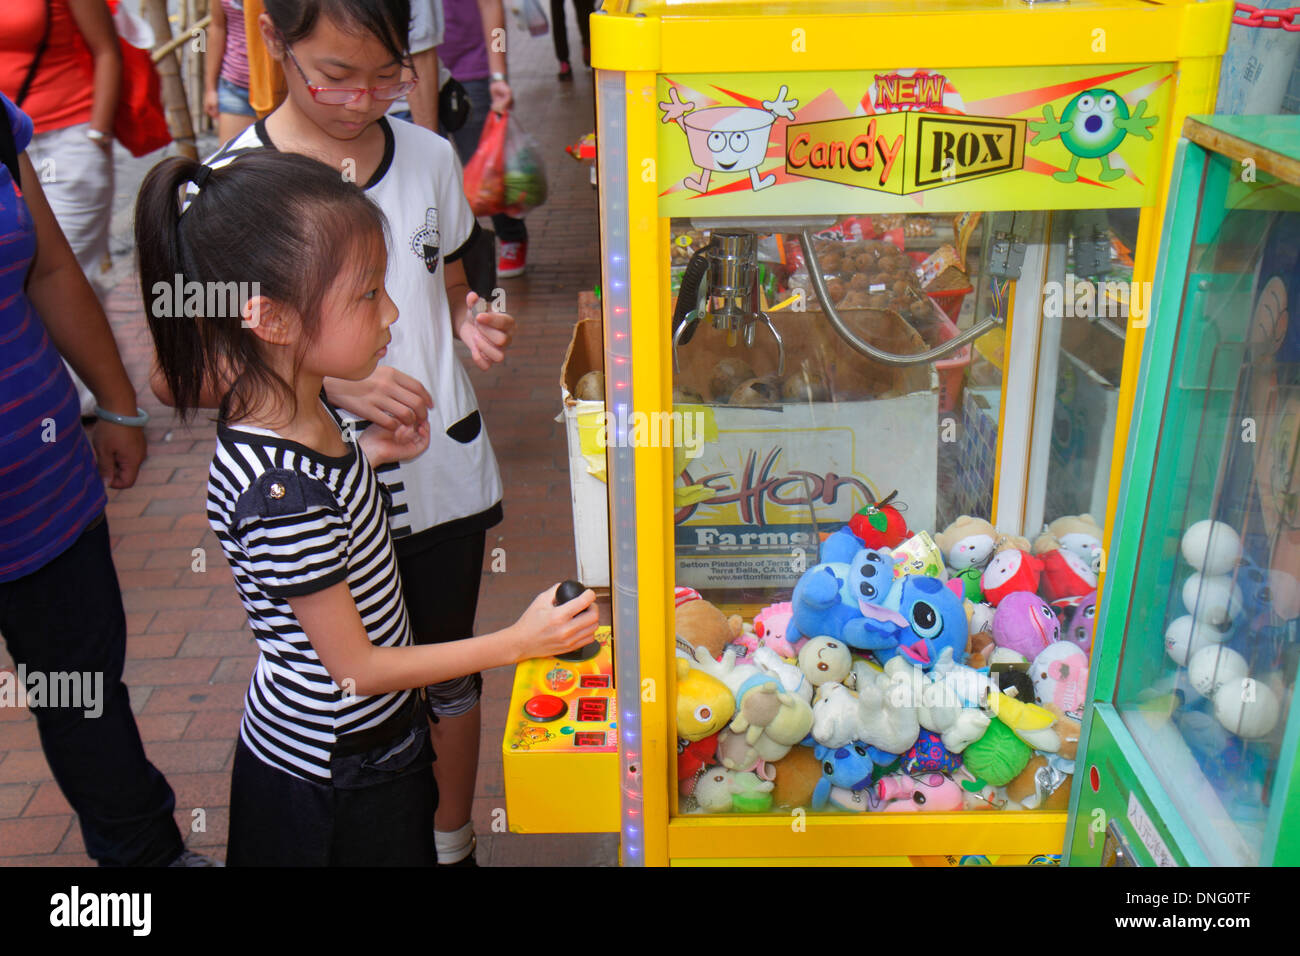 Hong Kong China Kowloon Sham Shui Po Asian girl playing carnival game claw prize stuffed animal - Stock Image